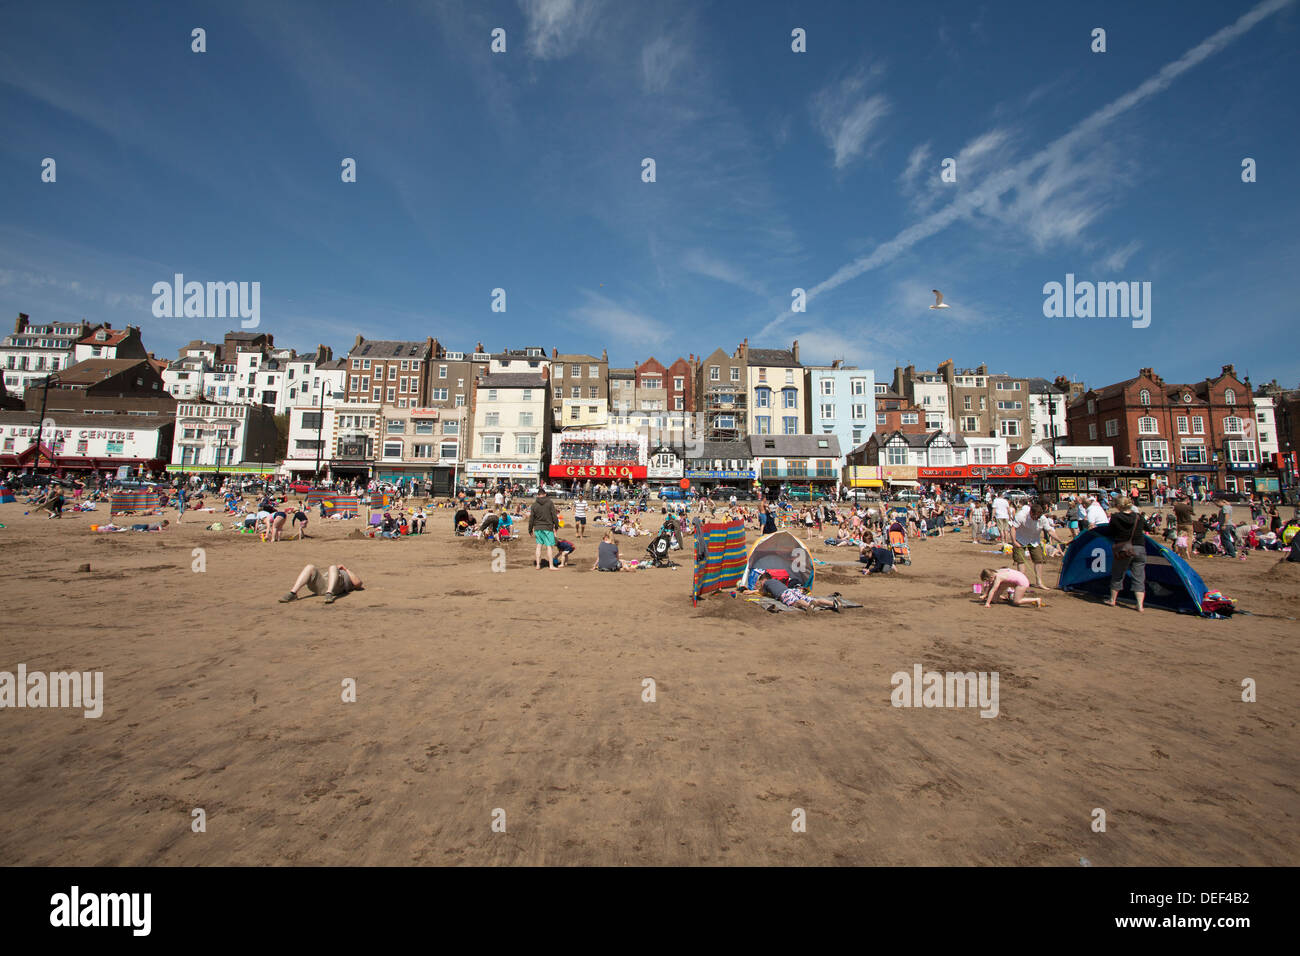 Busy Scarborough Beach on a sunny day. June 2013 - Stock Image